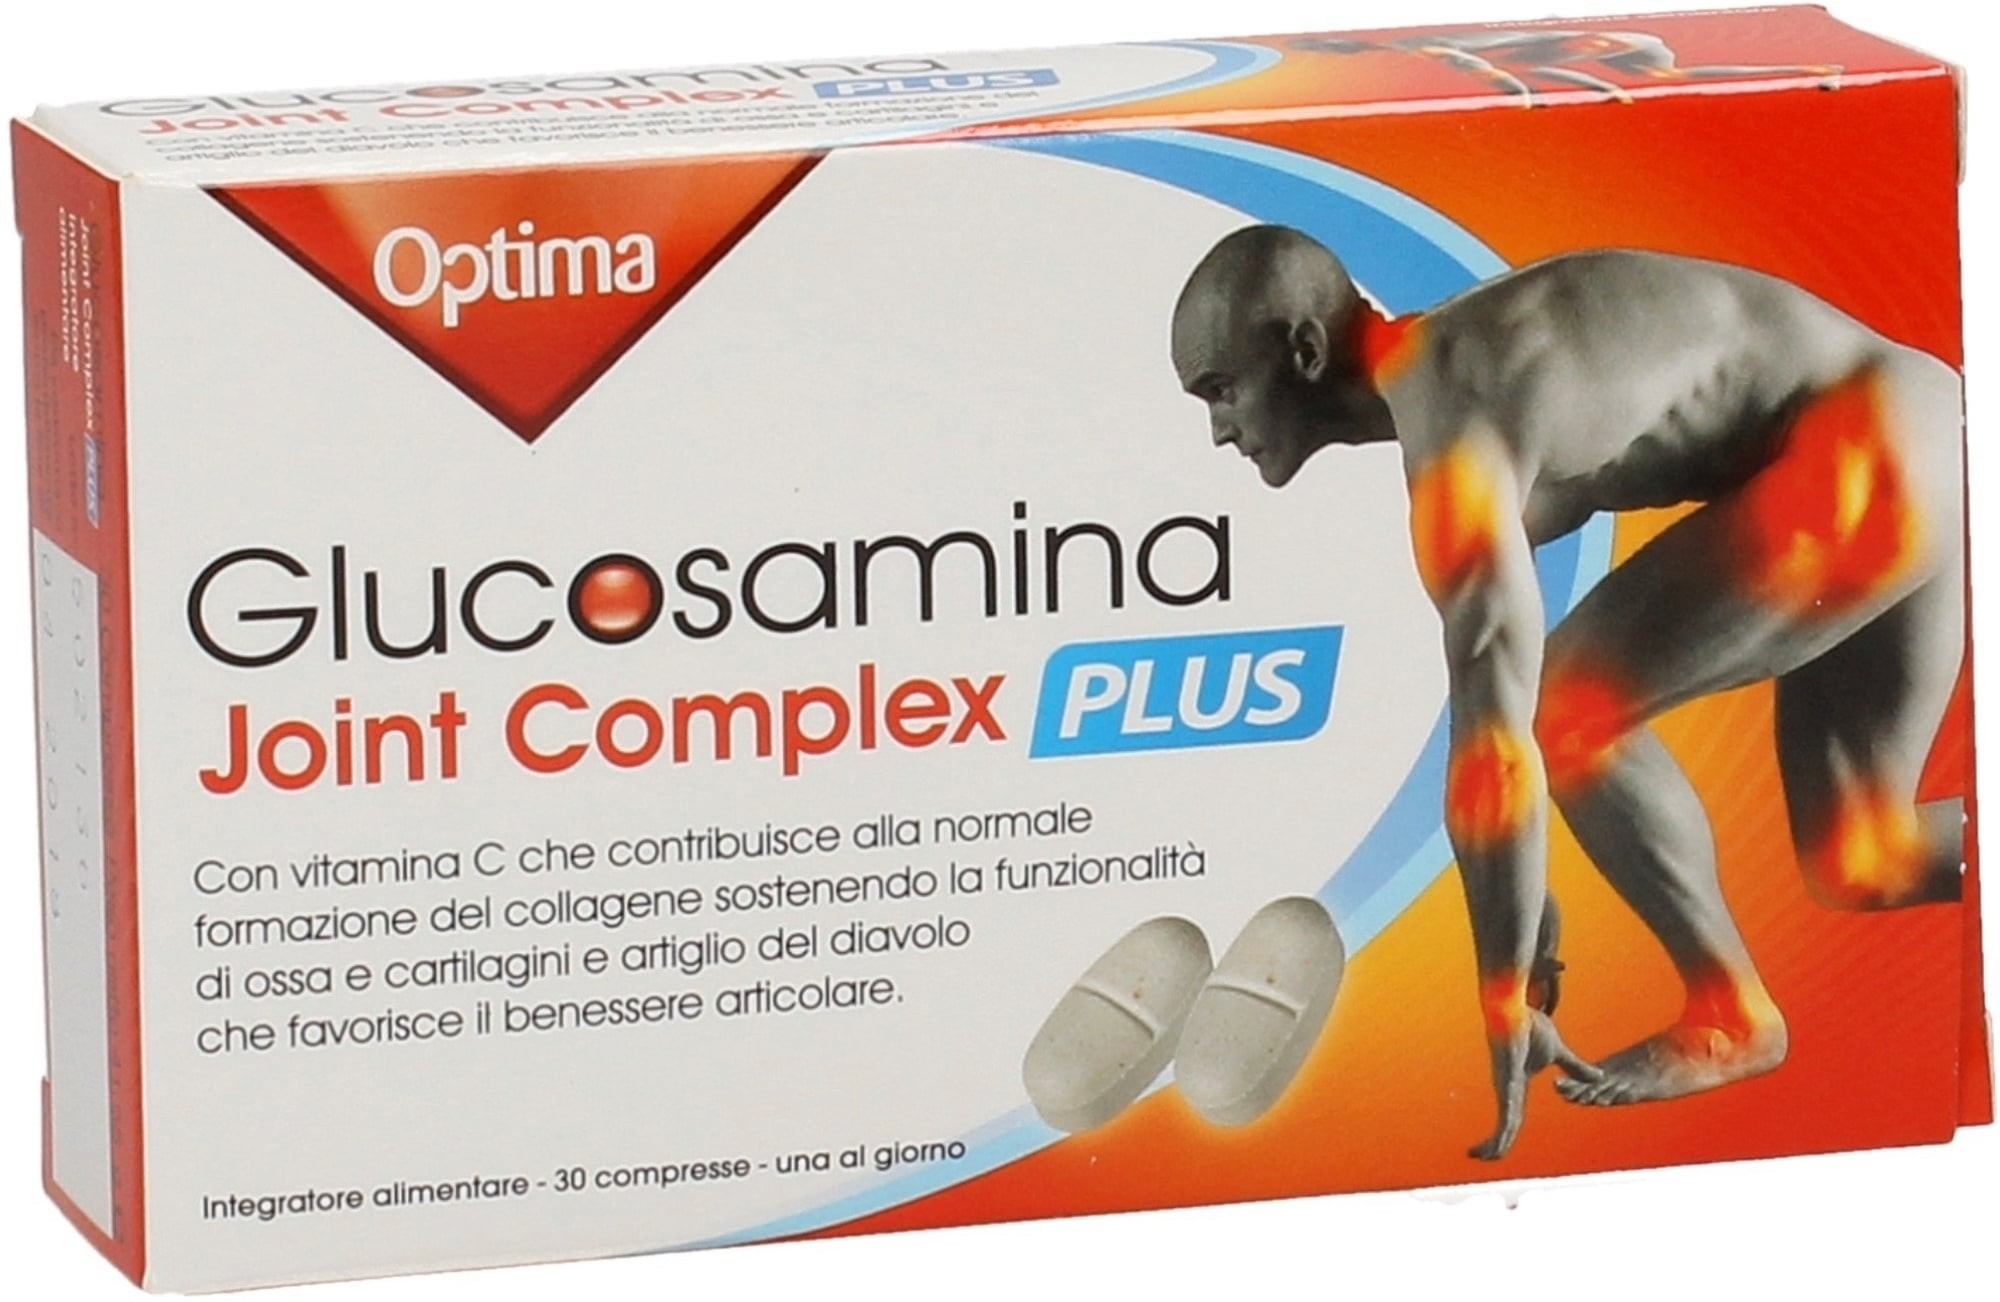 Optima Glucosamina Joint Complex Plus 30 compresse